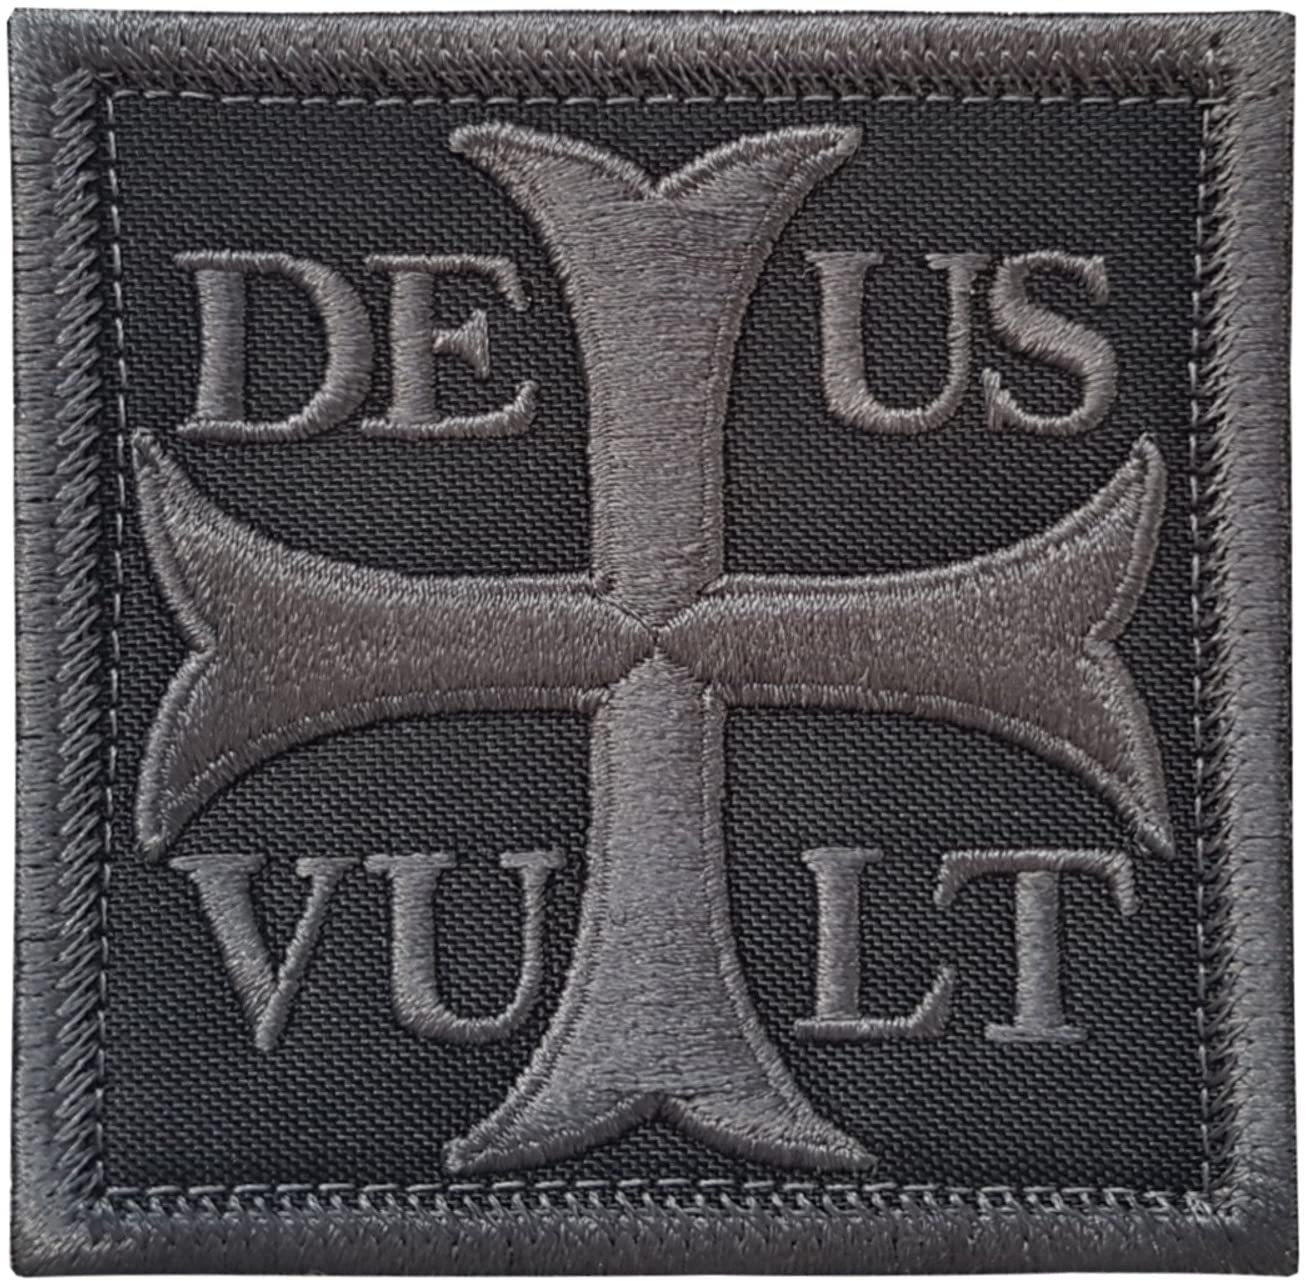 LEGEEON Subdued Deus Vult God Wills It Crusader Knight Holy Cross Templar Crusaders Morale Hook&Loop Patch